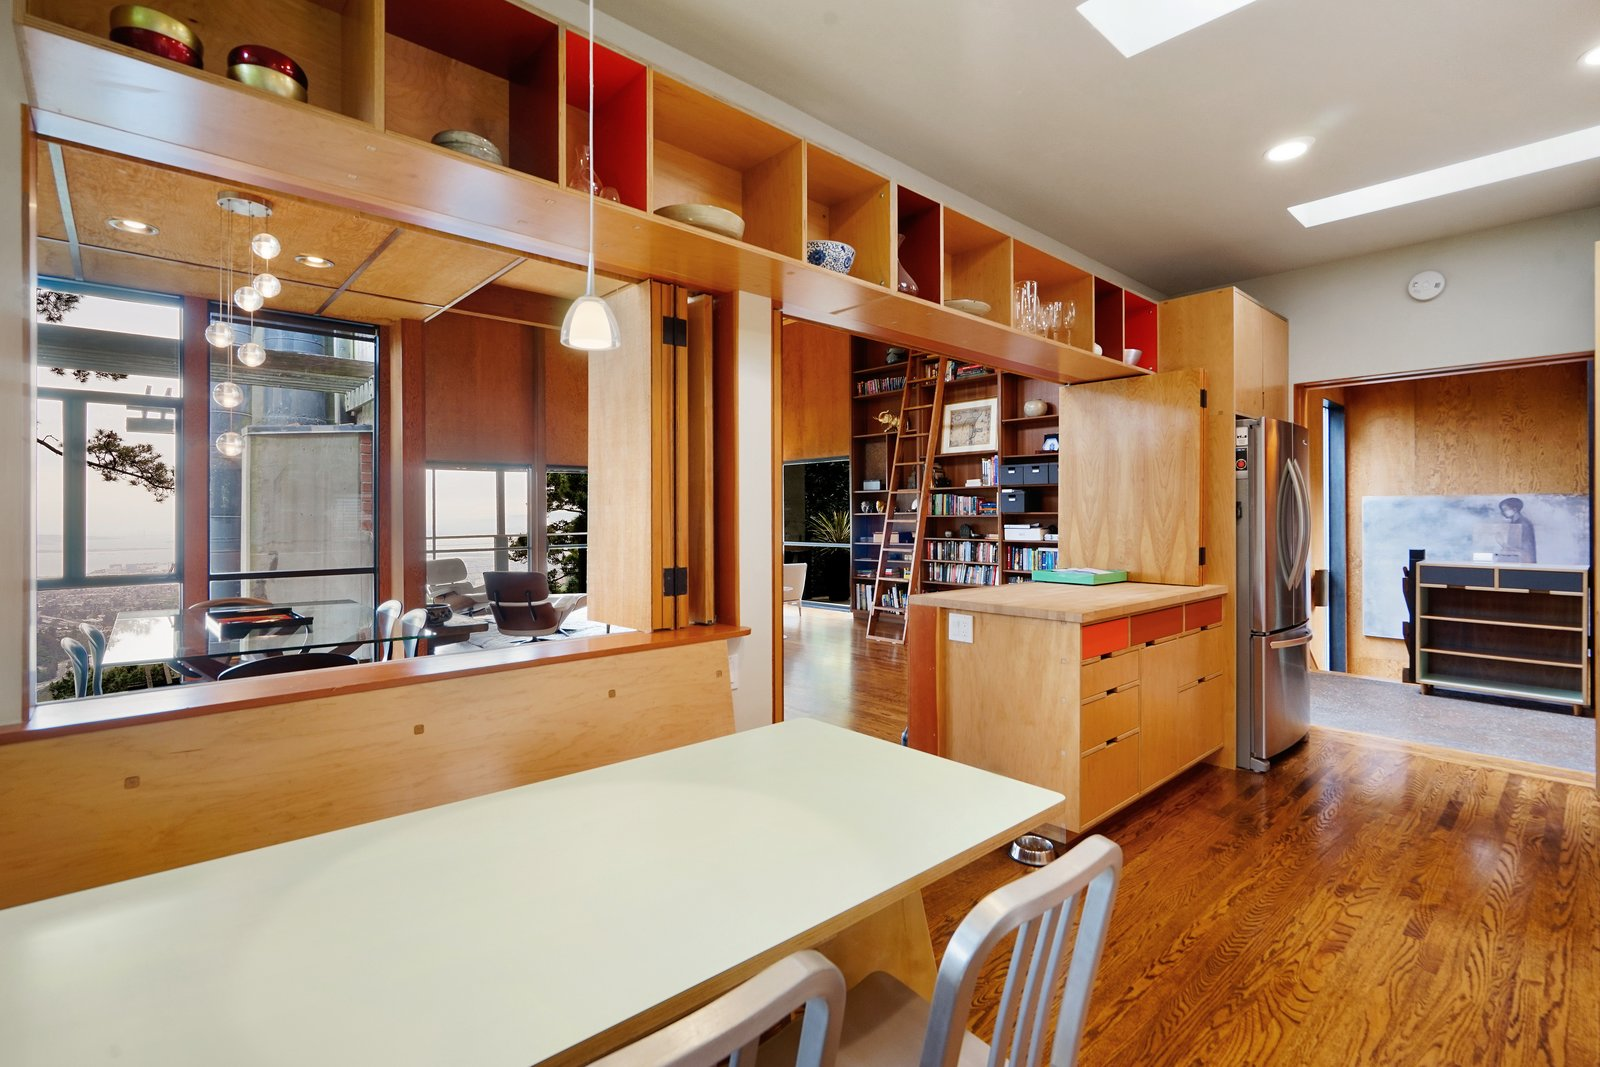 Photo 9 of 17 in This Knockout Midcentury in the Bay Area Will Run ...